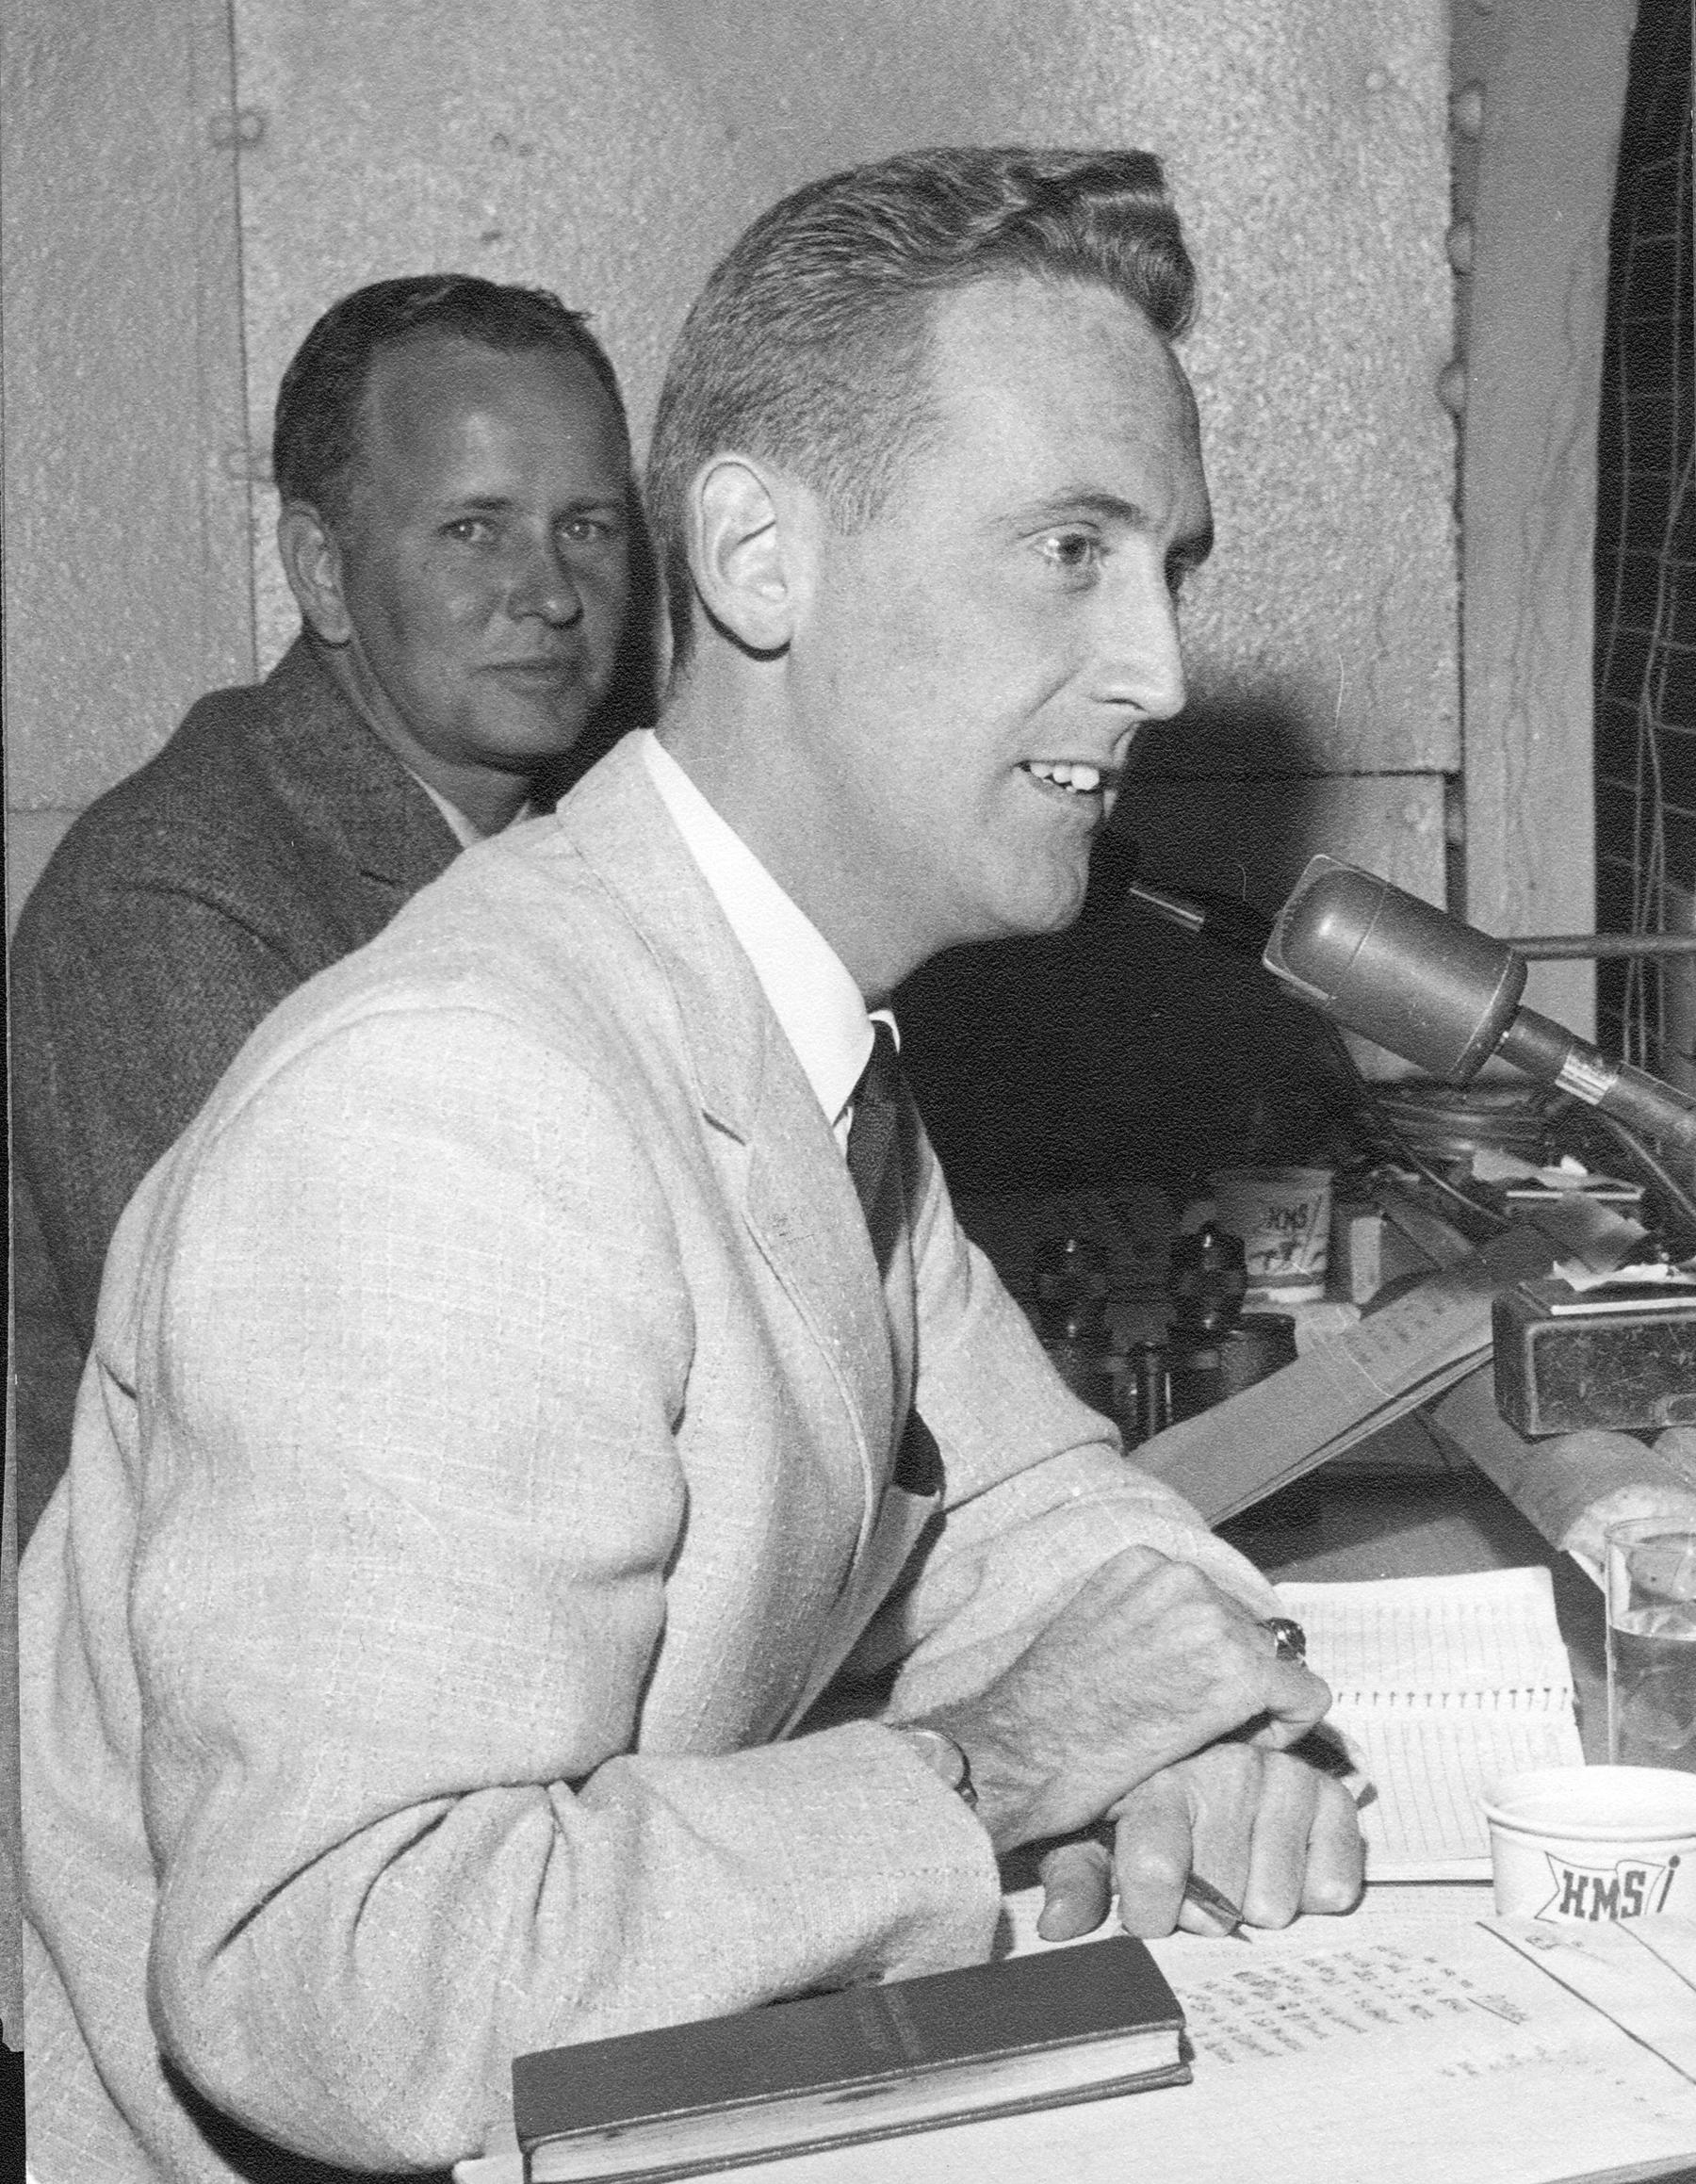 1982 Ford C. Frick Award Winner Vin Scully - BL-188-58 (National Baseball Hall of Fame Library)